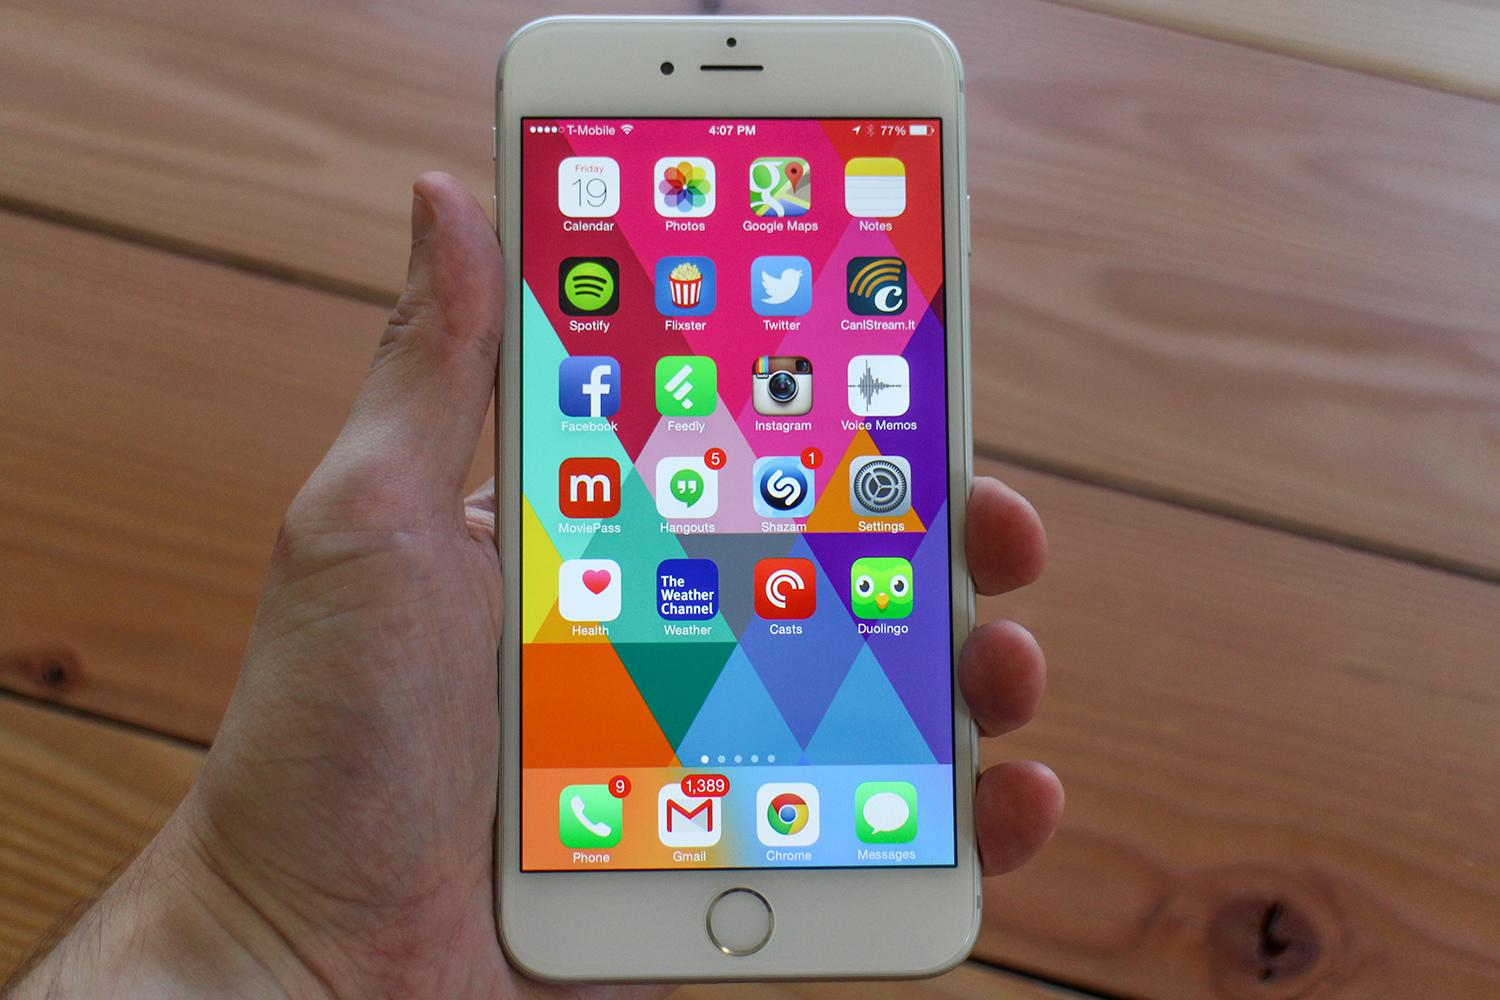 6 Plus On Iphone Stays Apple Screen: How To Switch From Android To IPhone